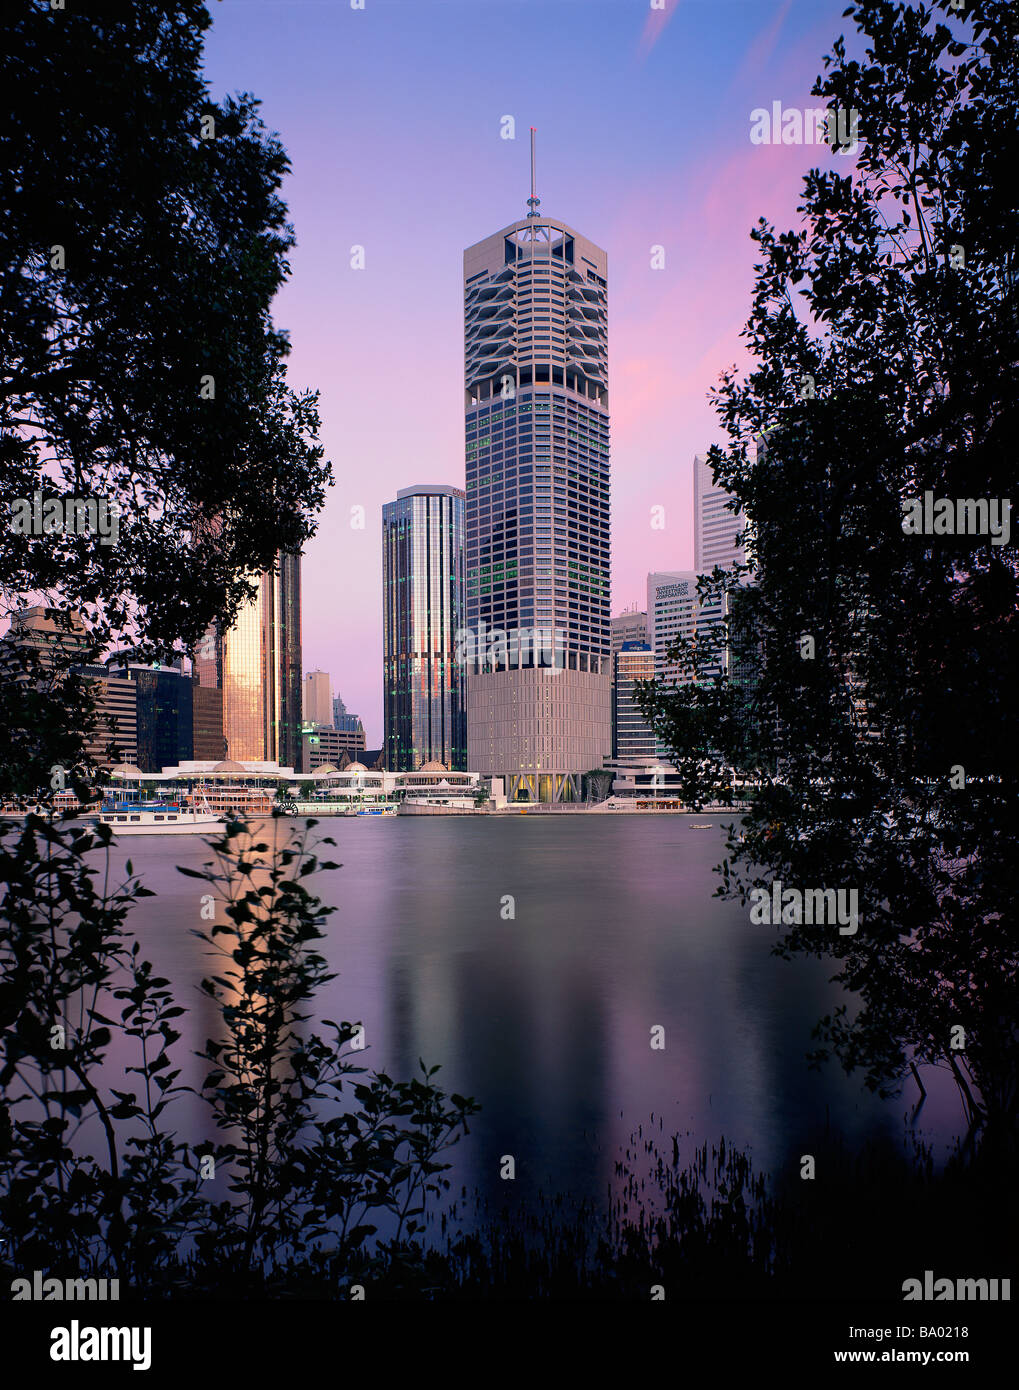 Riparian Plaza Brisbane - Stock Image